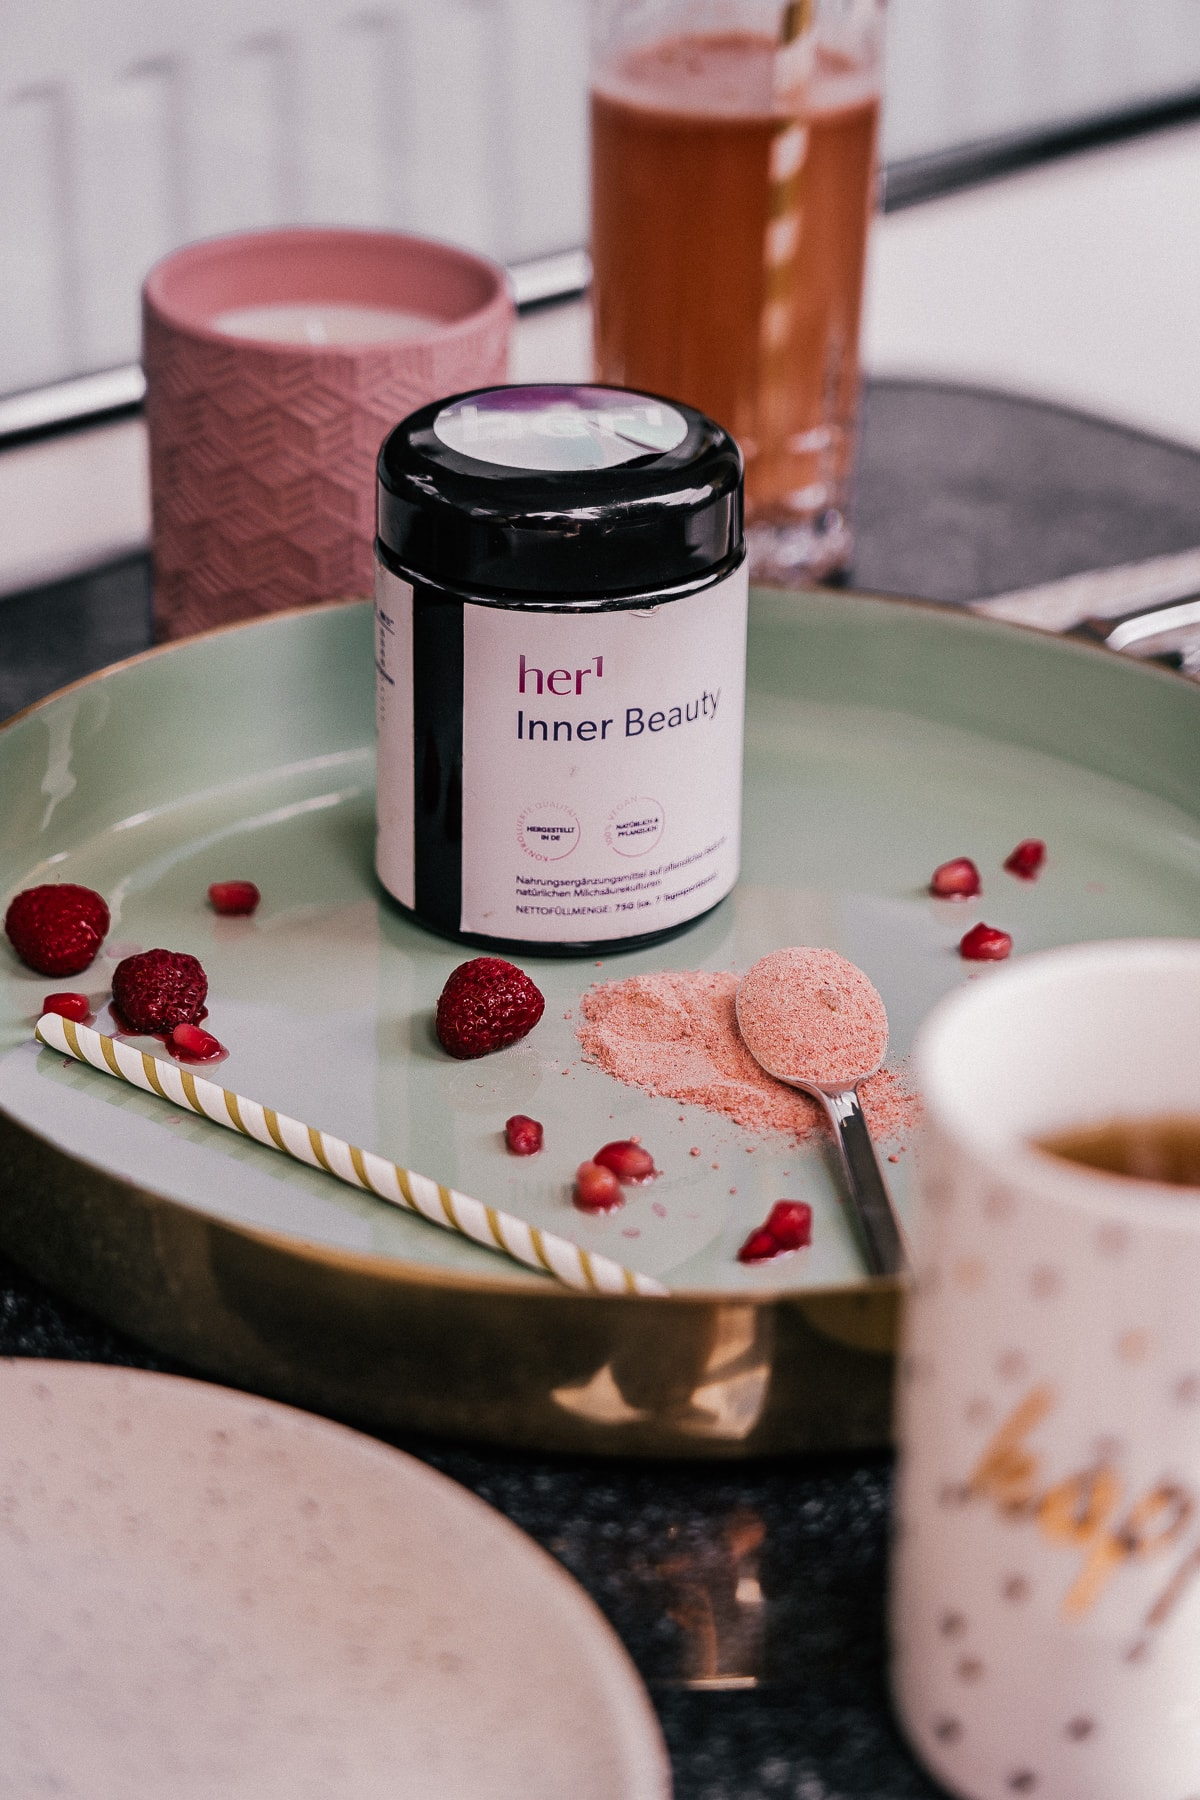 Her One Inner Beauty - Superfoods für Vielreisende